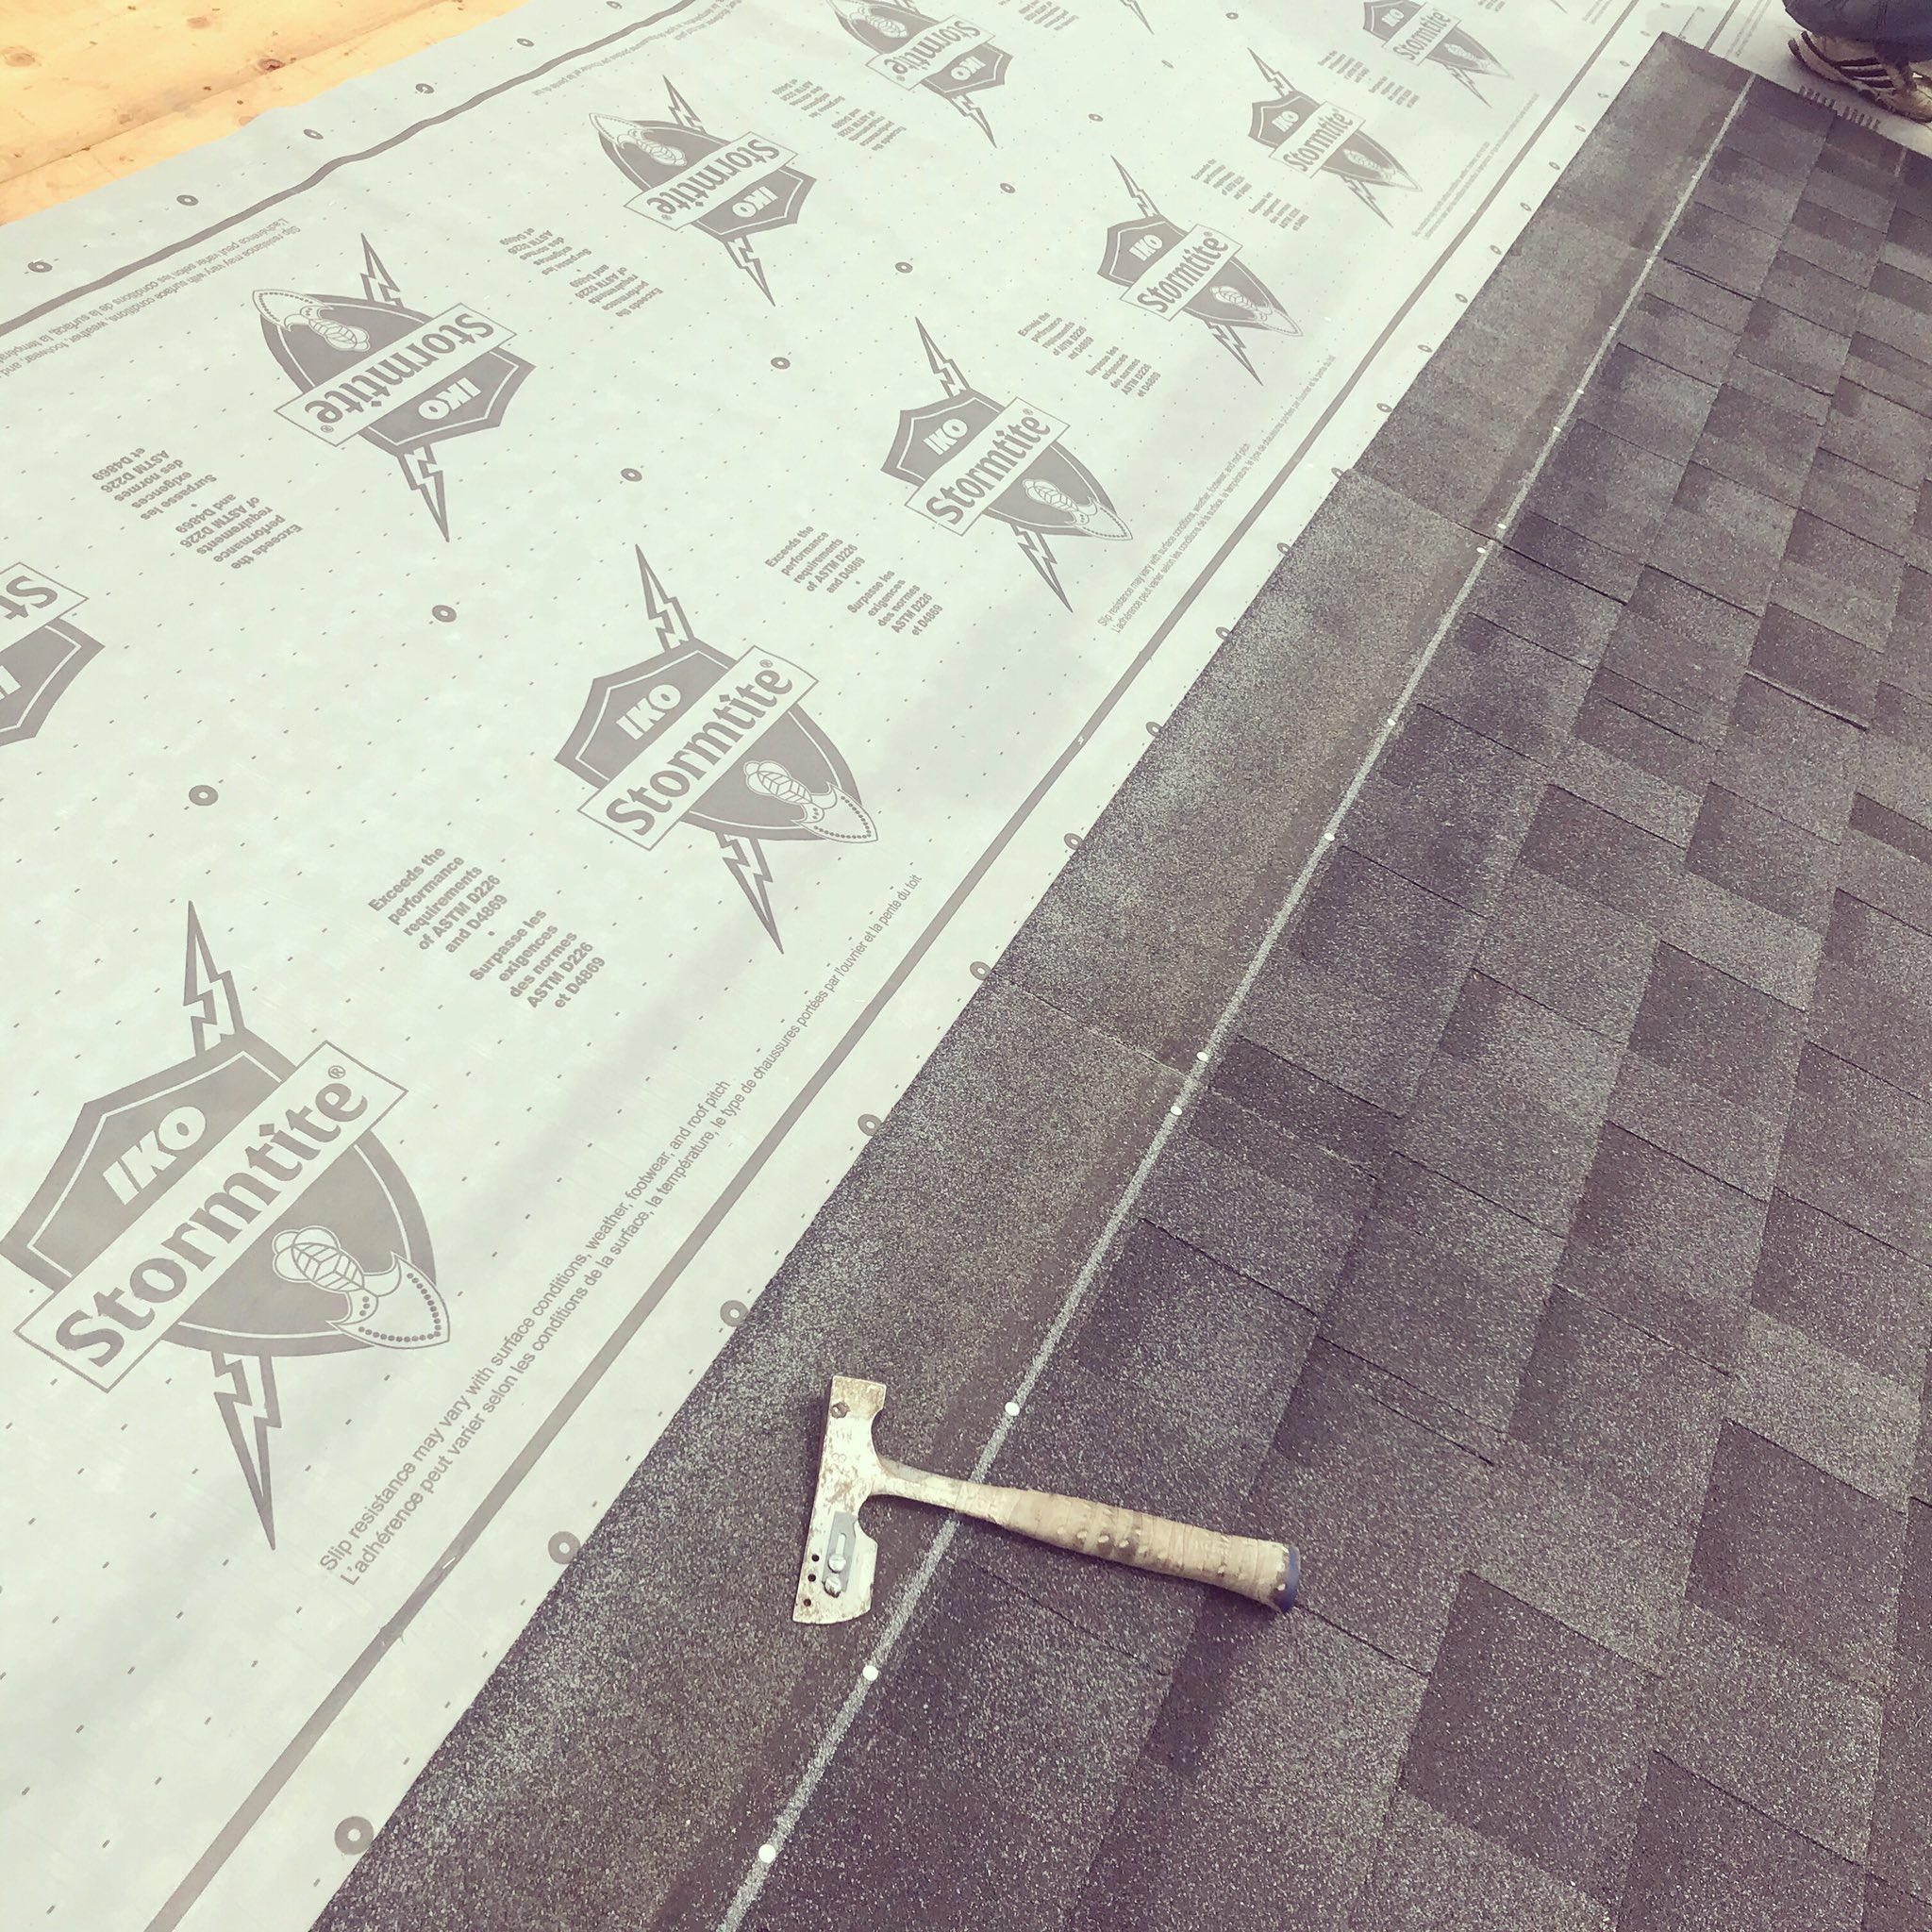 Luso Roofing On Twitter Installation Of Iko Cambridge Shingles With Stormtite Synthetic Underlayment Another Quality Hand Nailed Job Https T Co Lmskcso71y Ikoroofing Handnailingallday Cambridge Ikoroofing Stormtite Lusoroofing